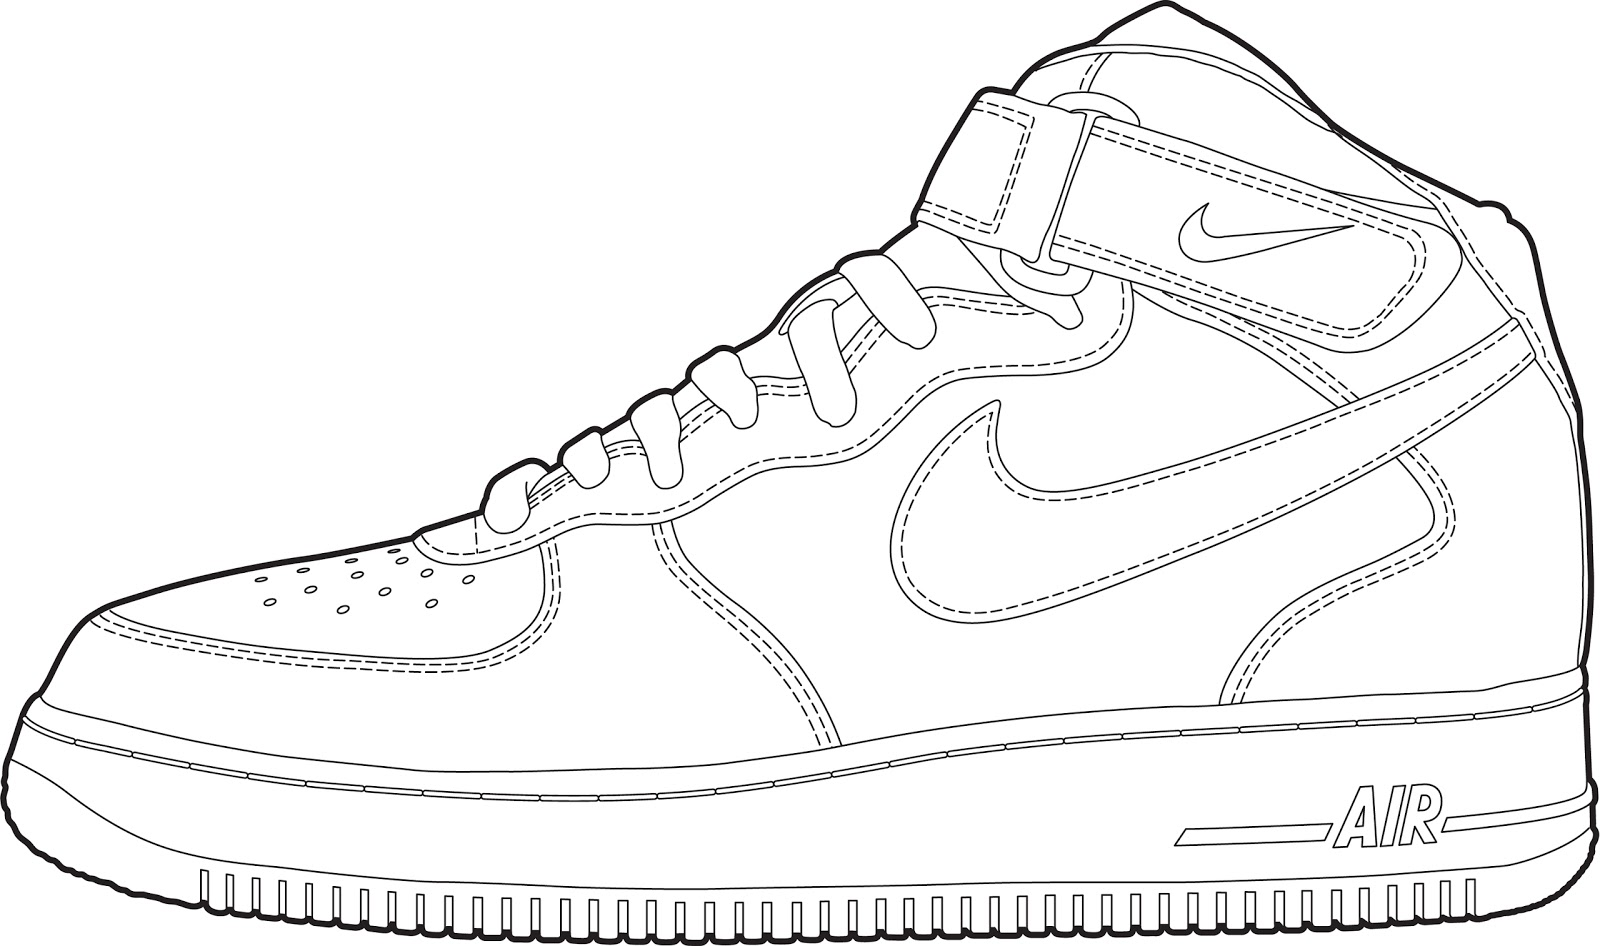 How To Draw Nike Air Force 1